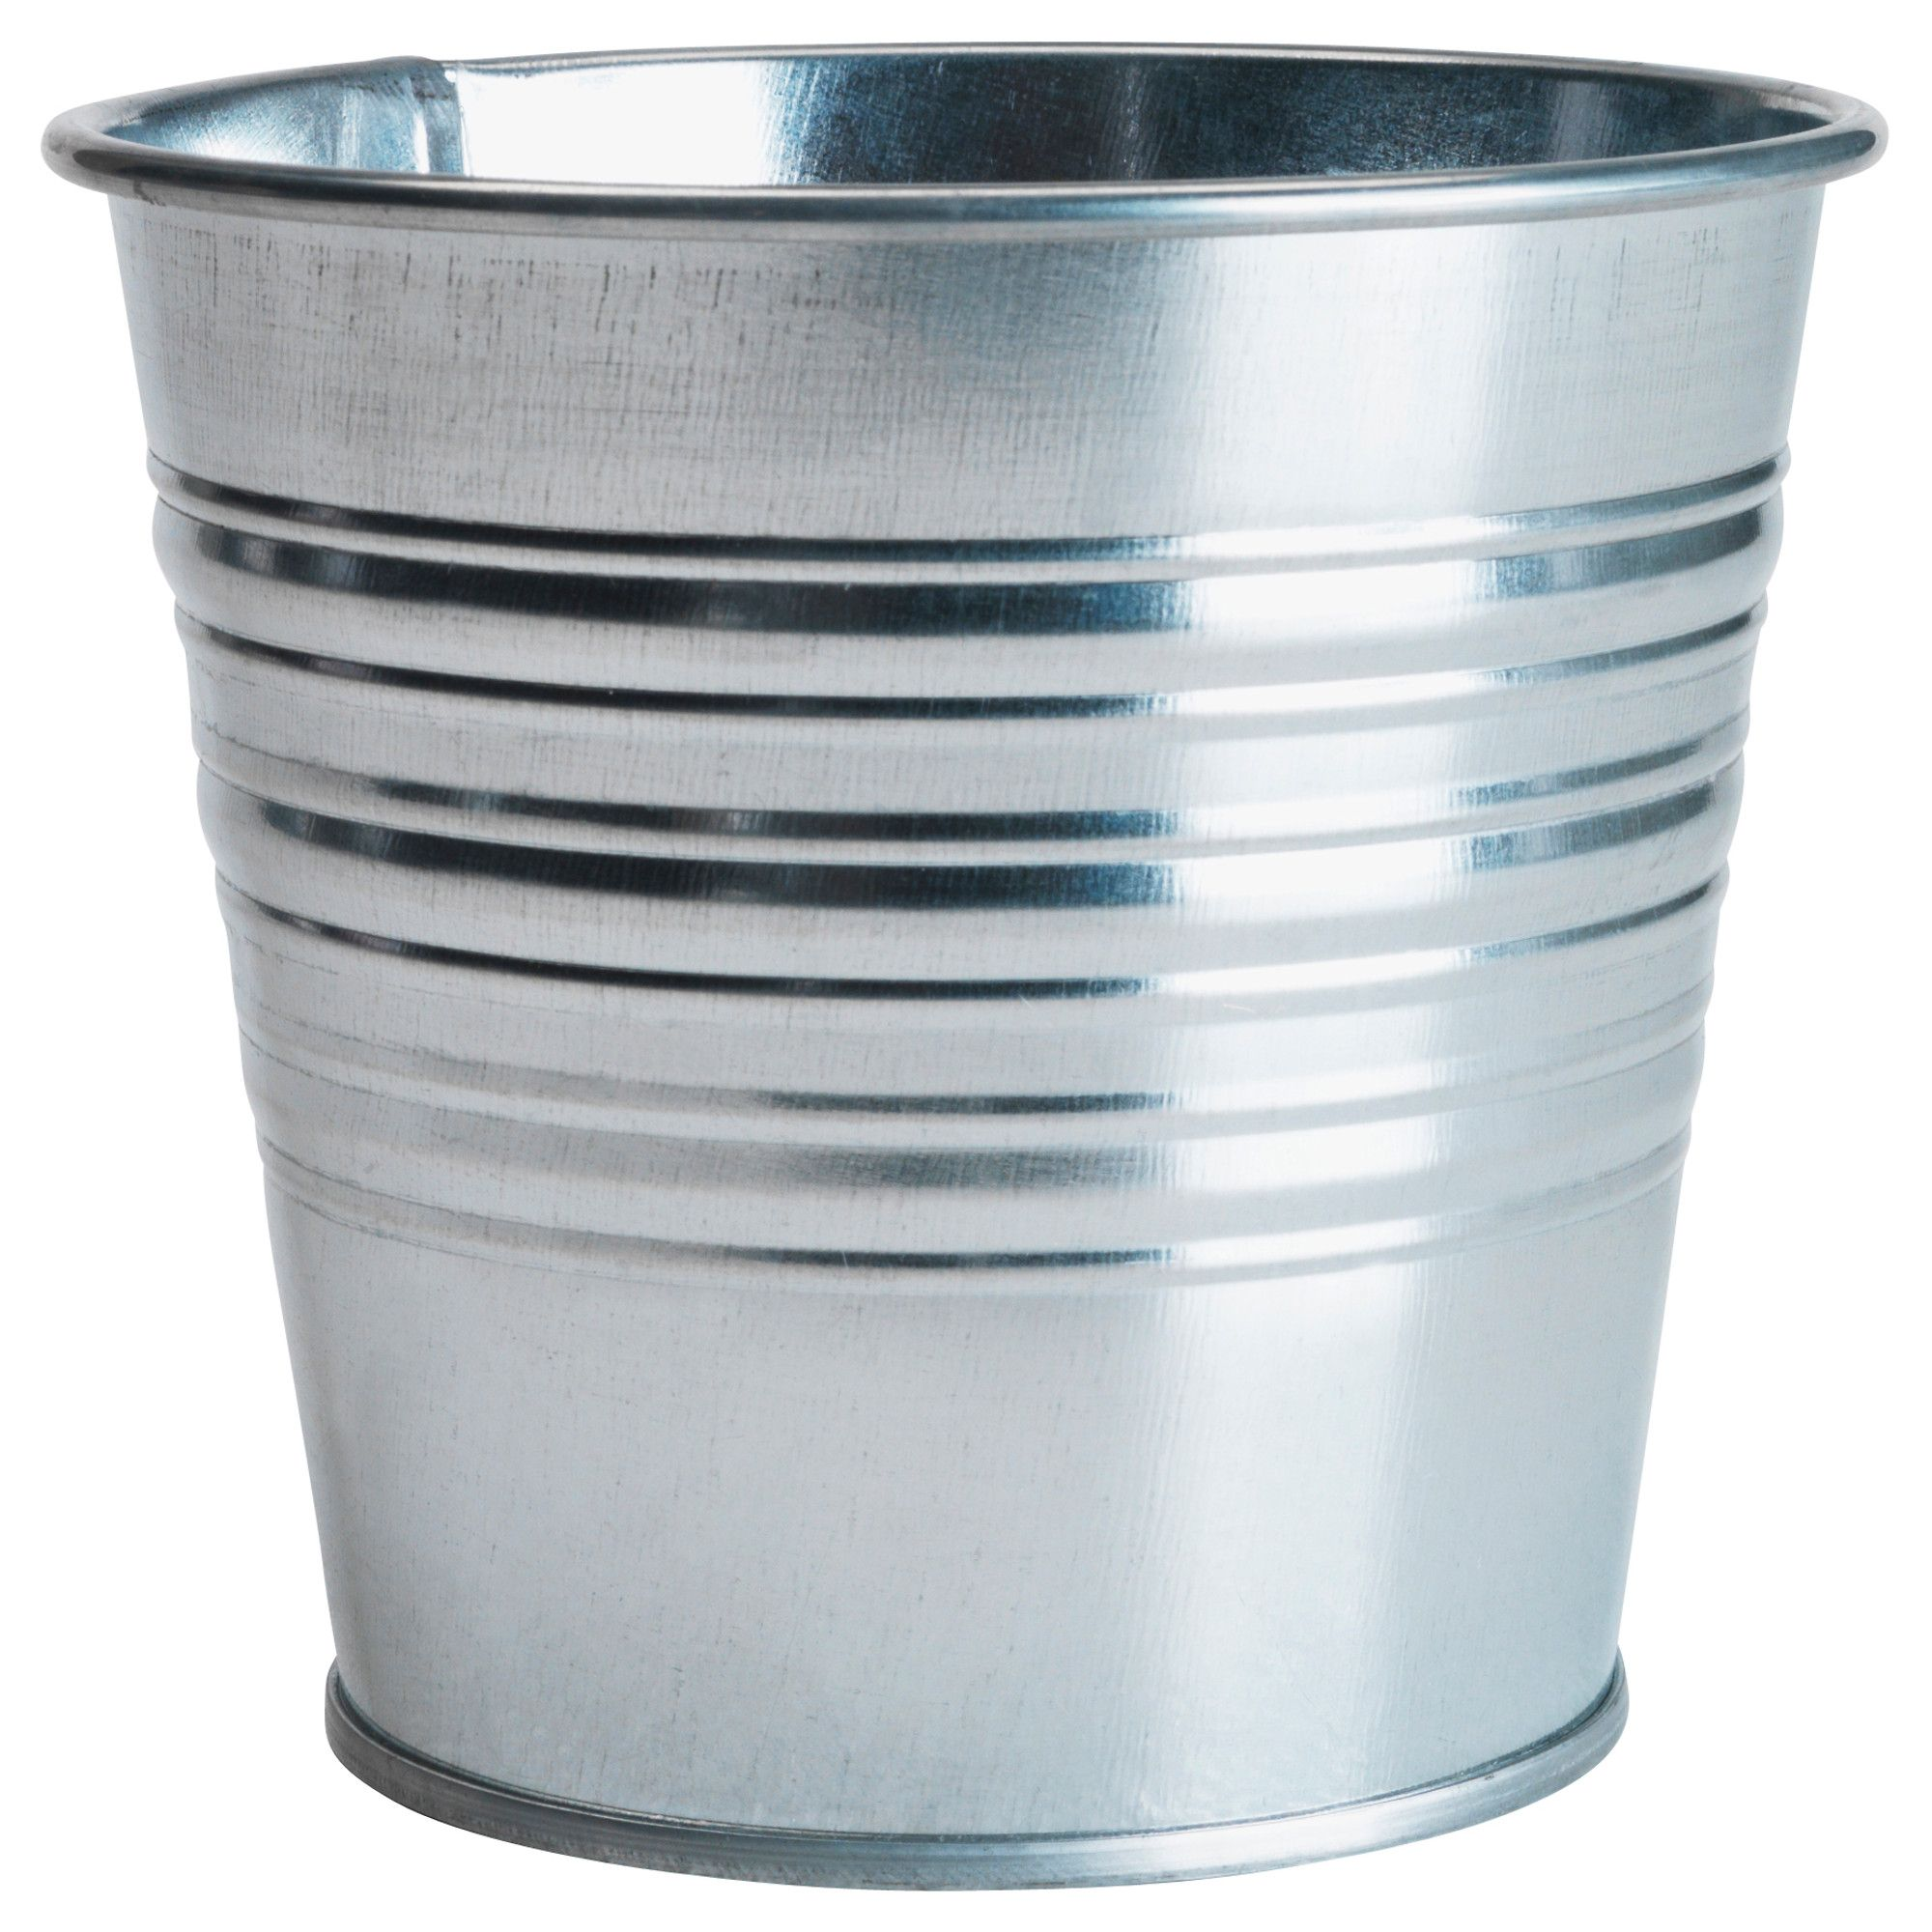 Ikea Indoor Garden: SOCKER Plant Pot, Galvanized Indoor/outdoor, Galvanized